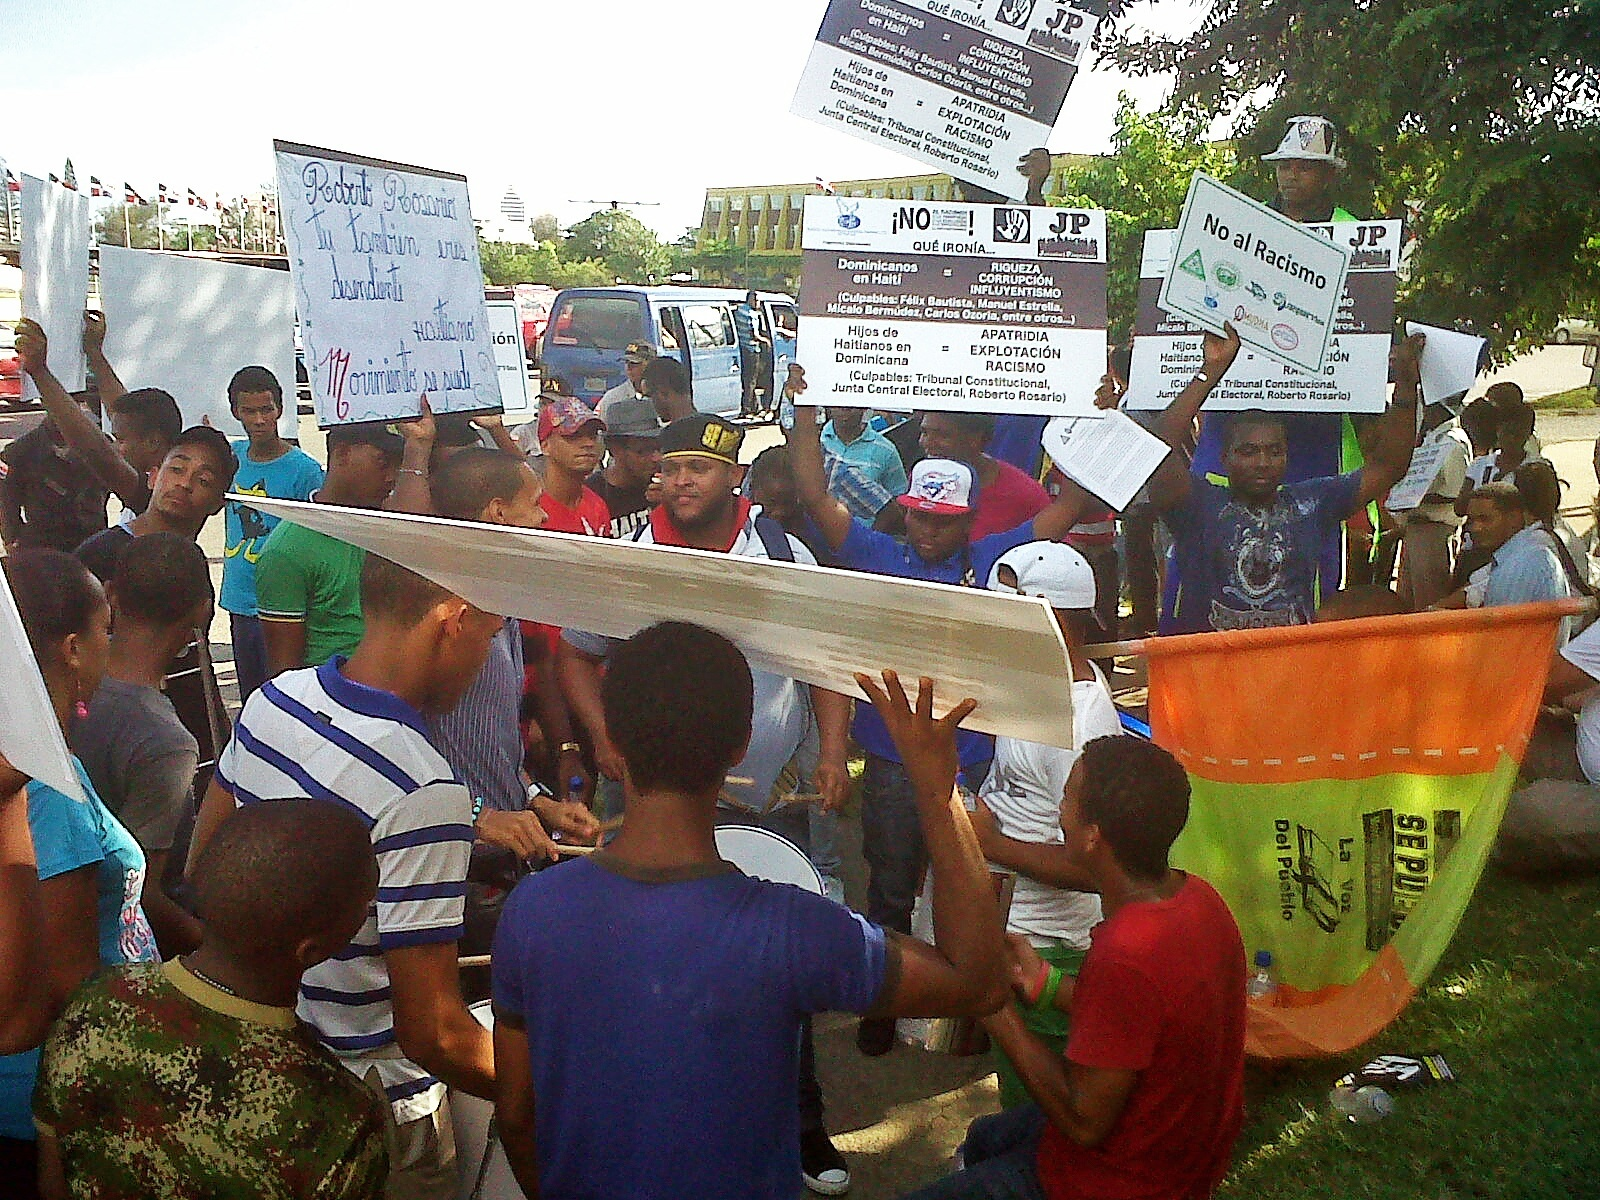 Protesters organize outside the Dominican Republic's Constitutional Court.